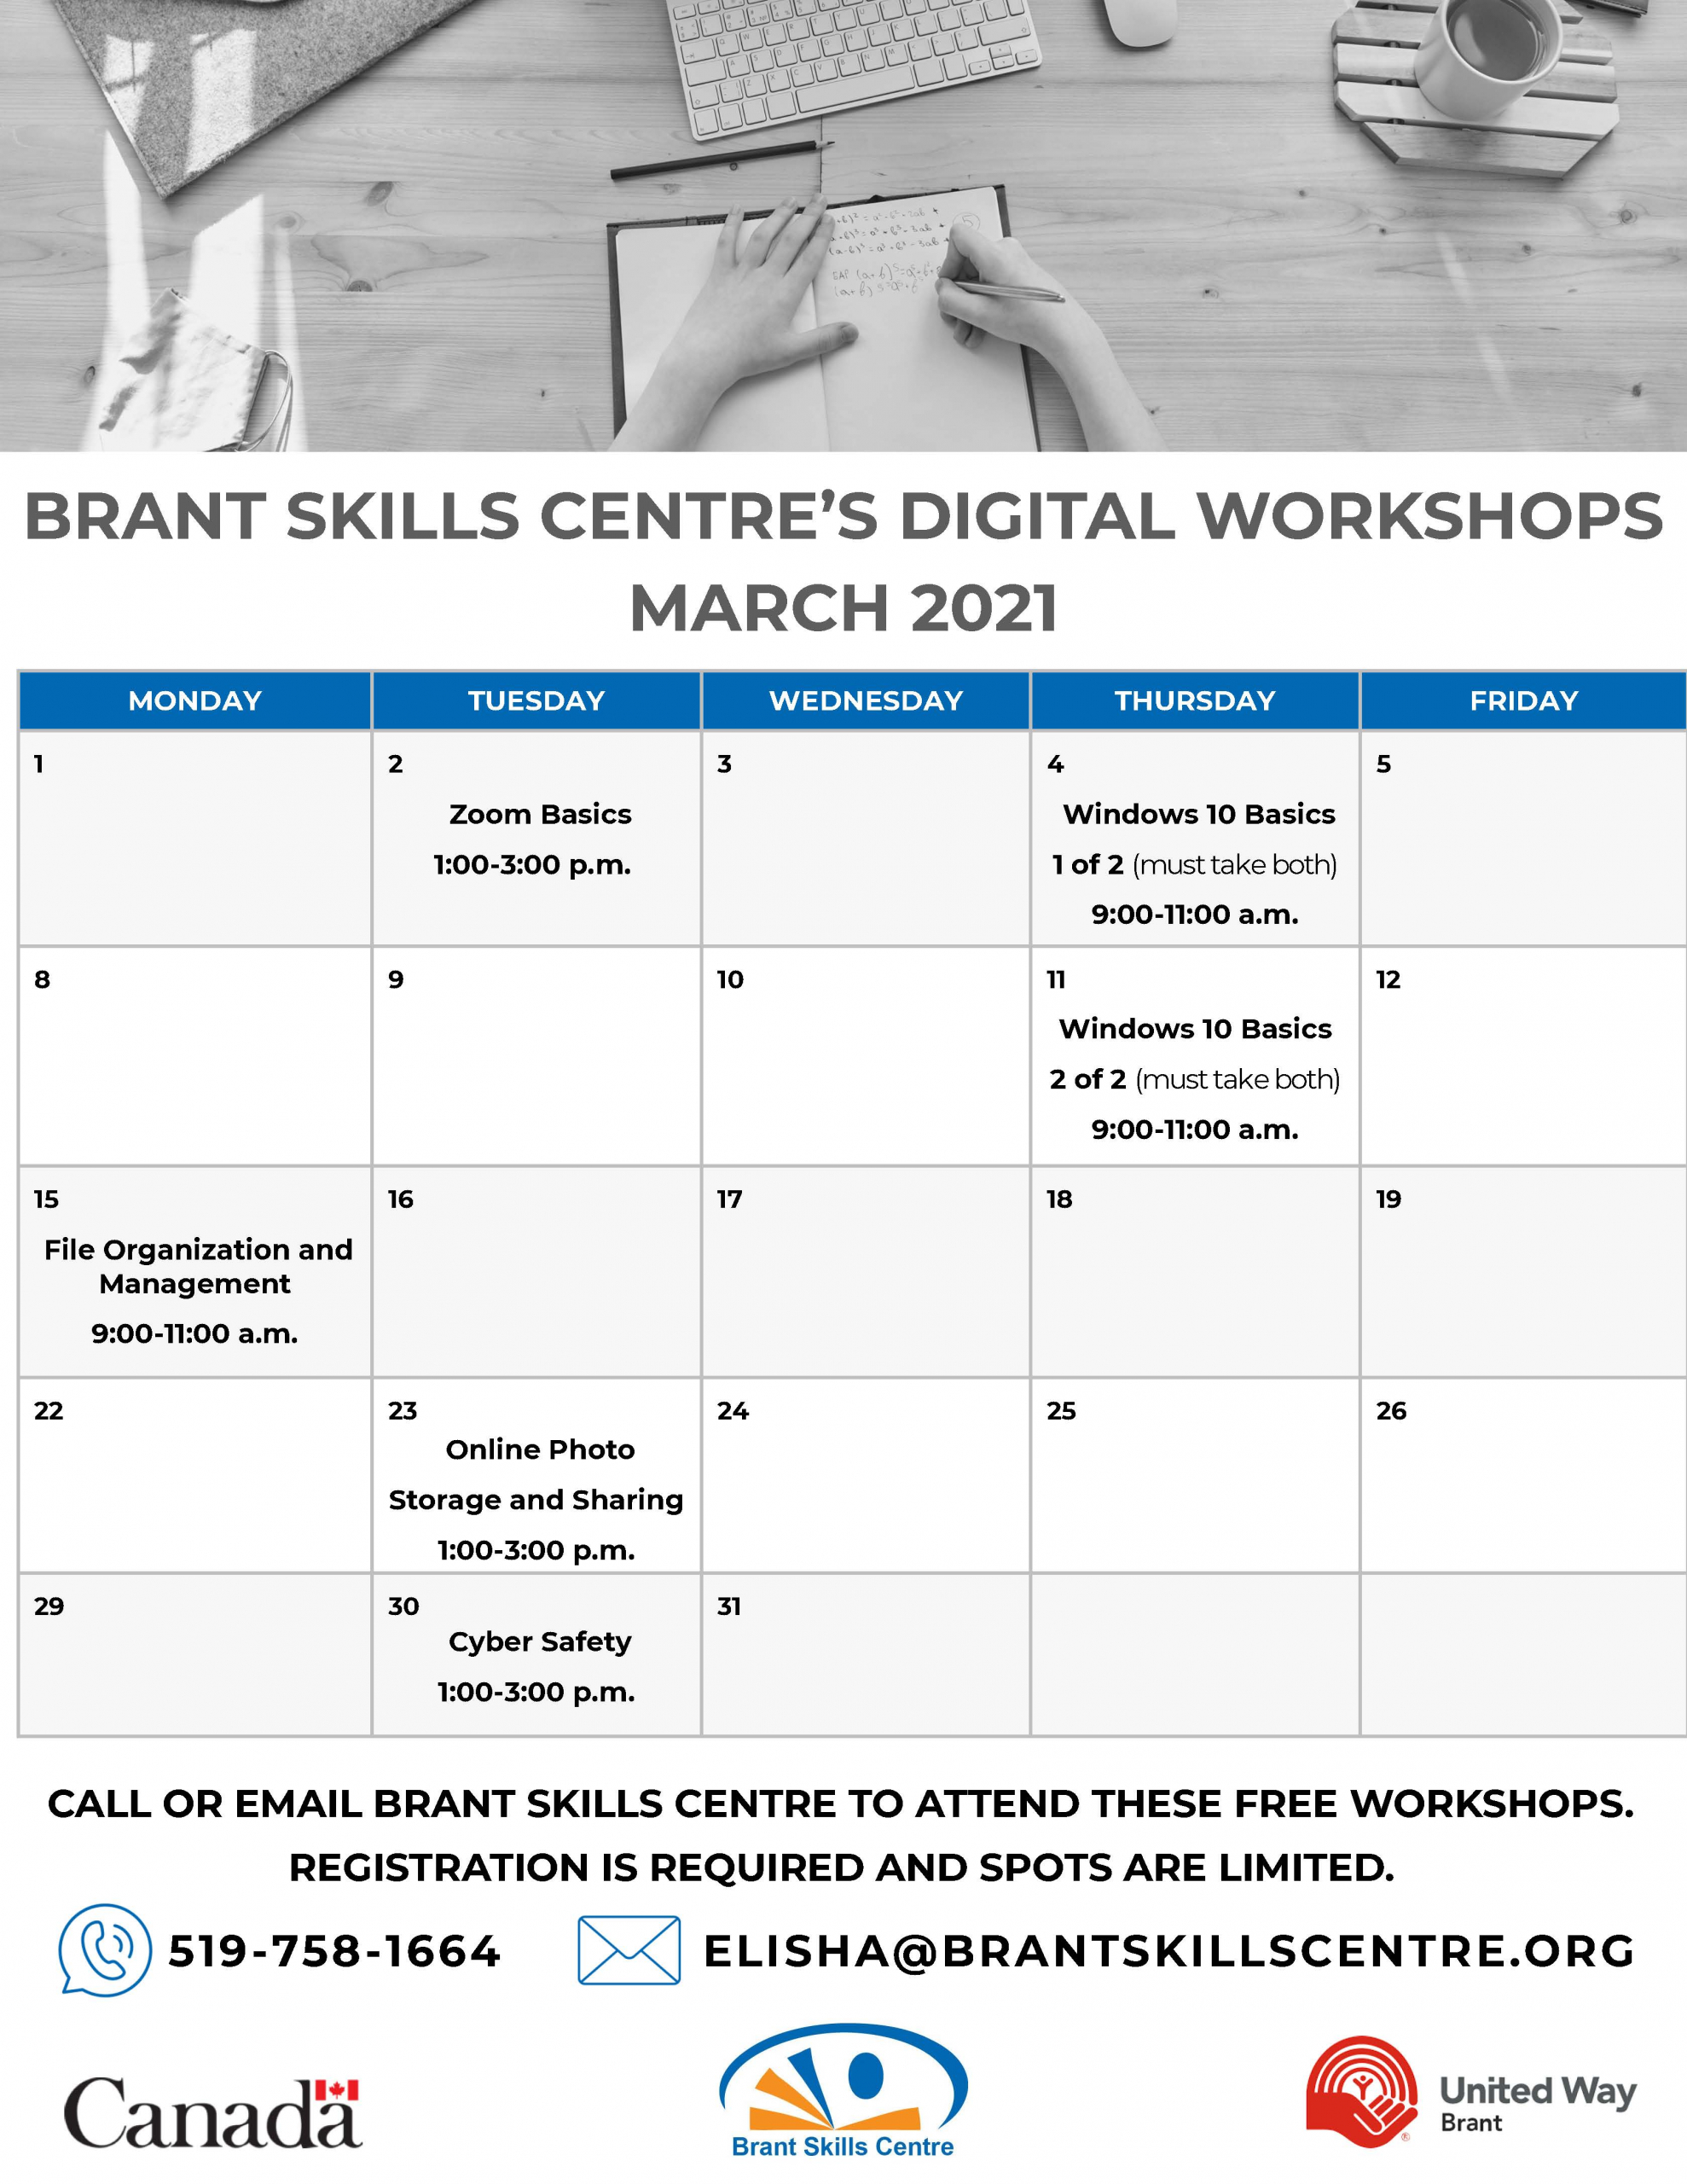 Brant Skills Centre's Digital Workshops - March 2021